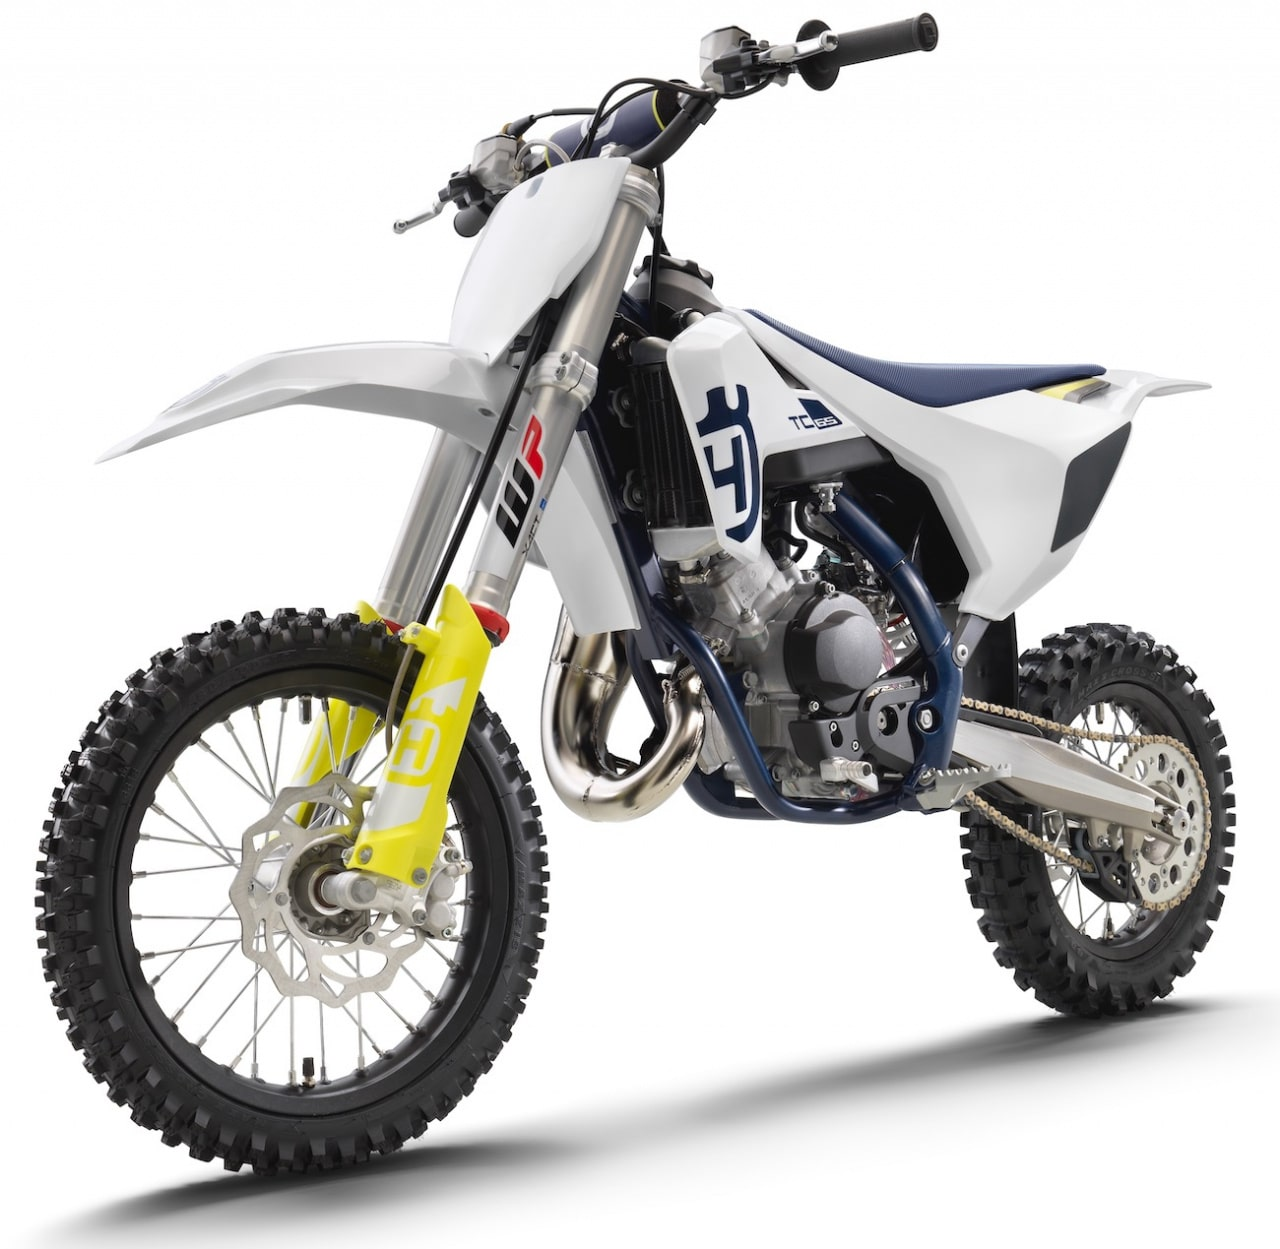 FIRST LOOK! 2020 HUSQVARNAS STEP OUT FOR THEIR INTRODUCTION